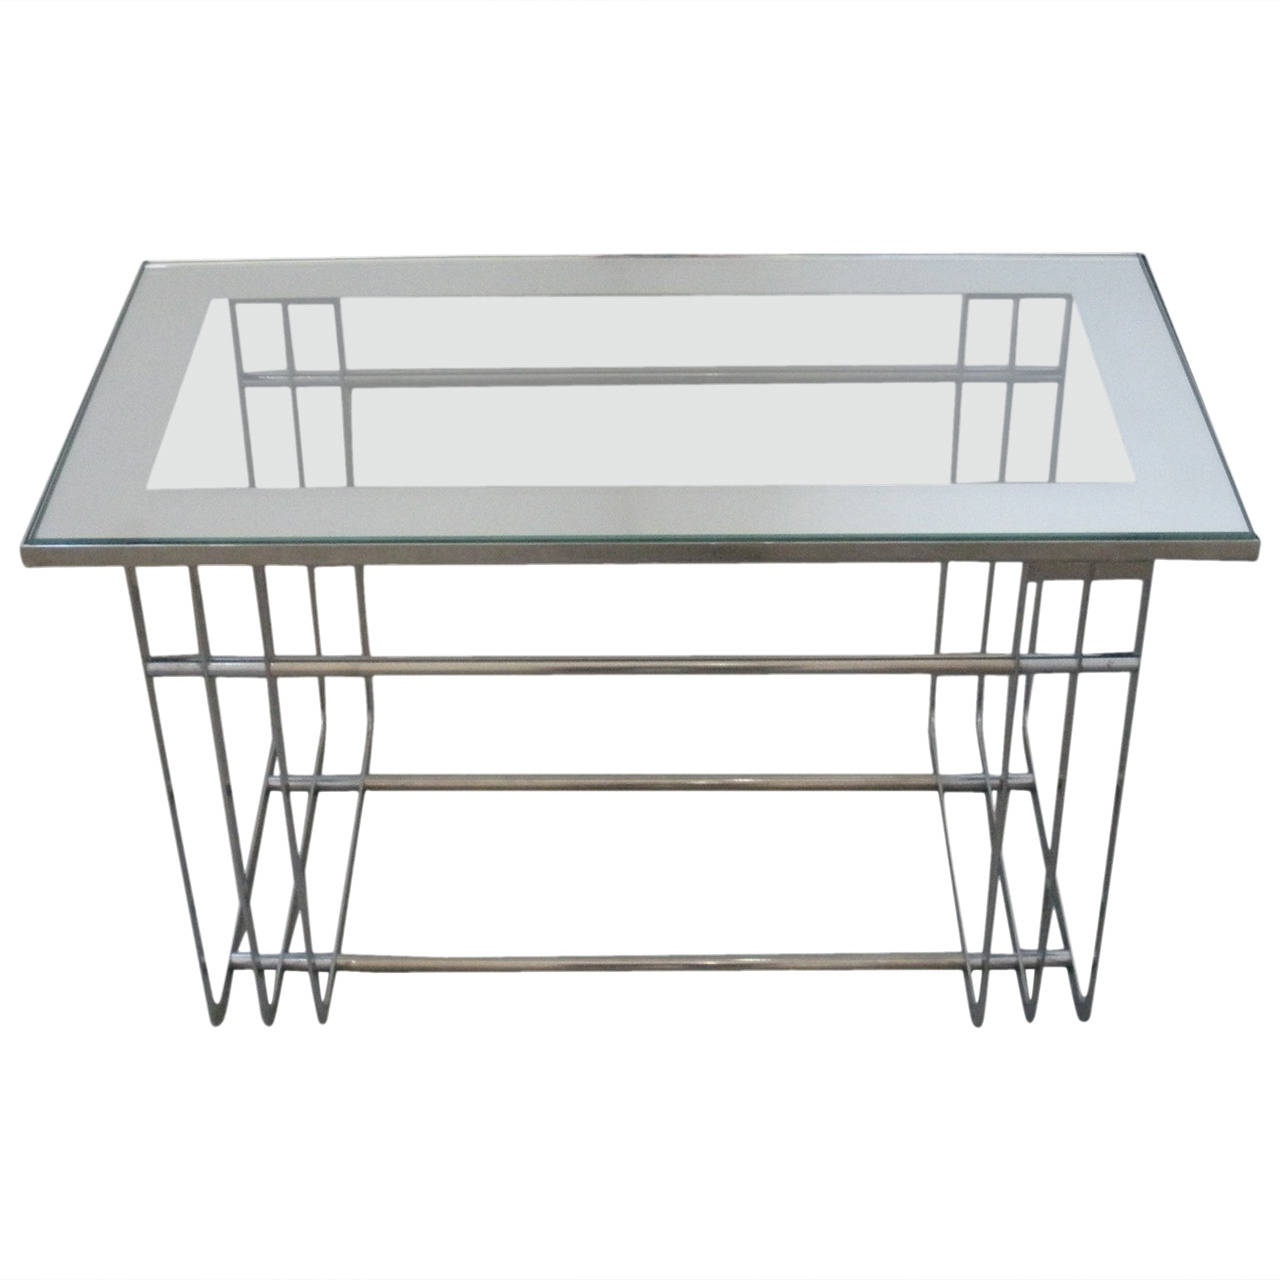 American Art Deco Moderne Table